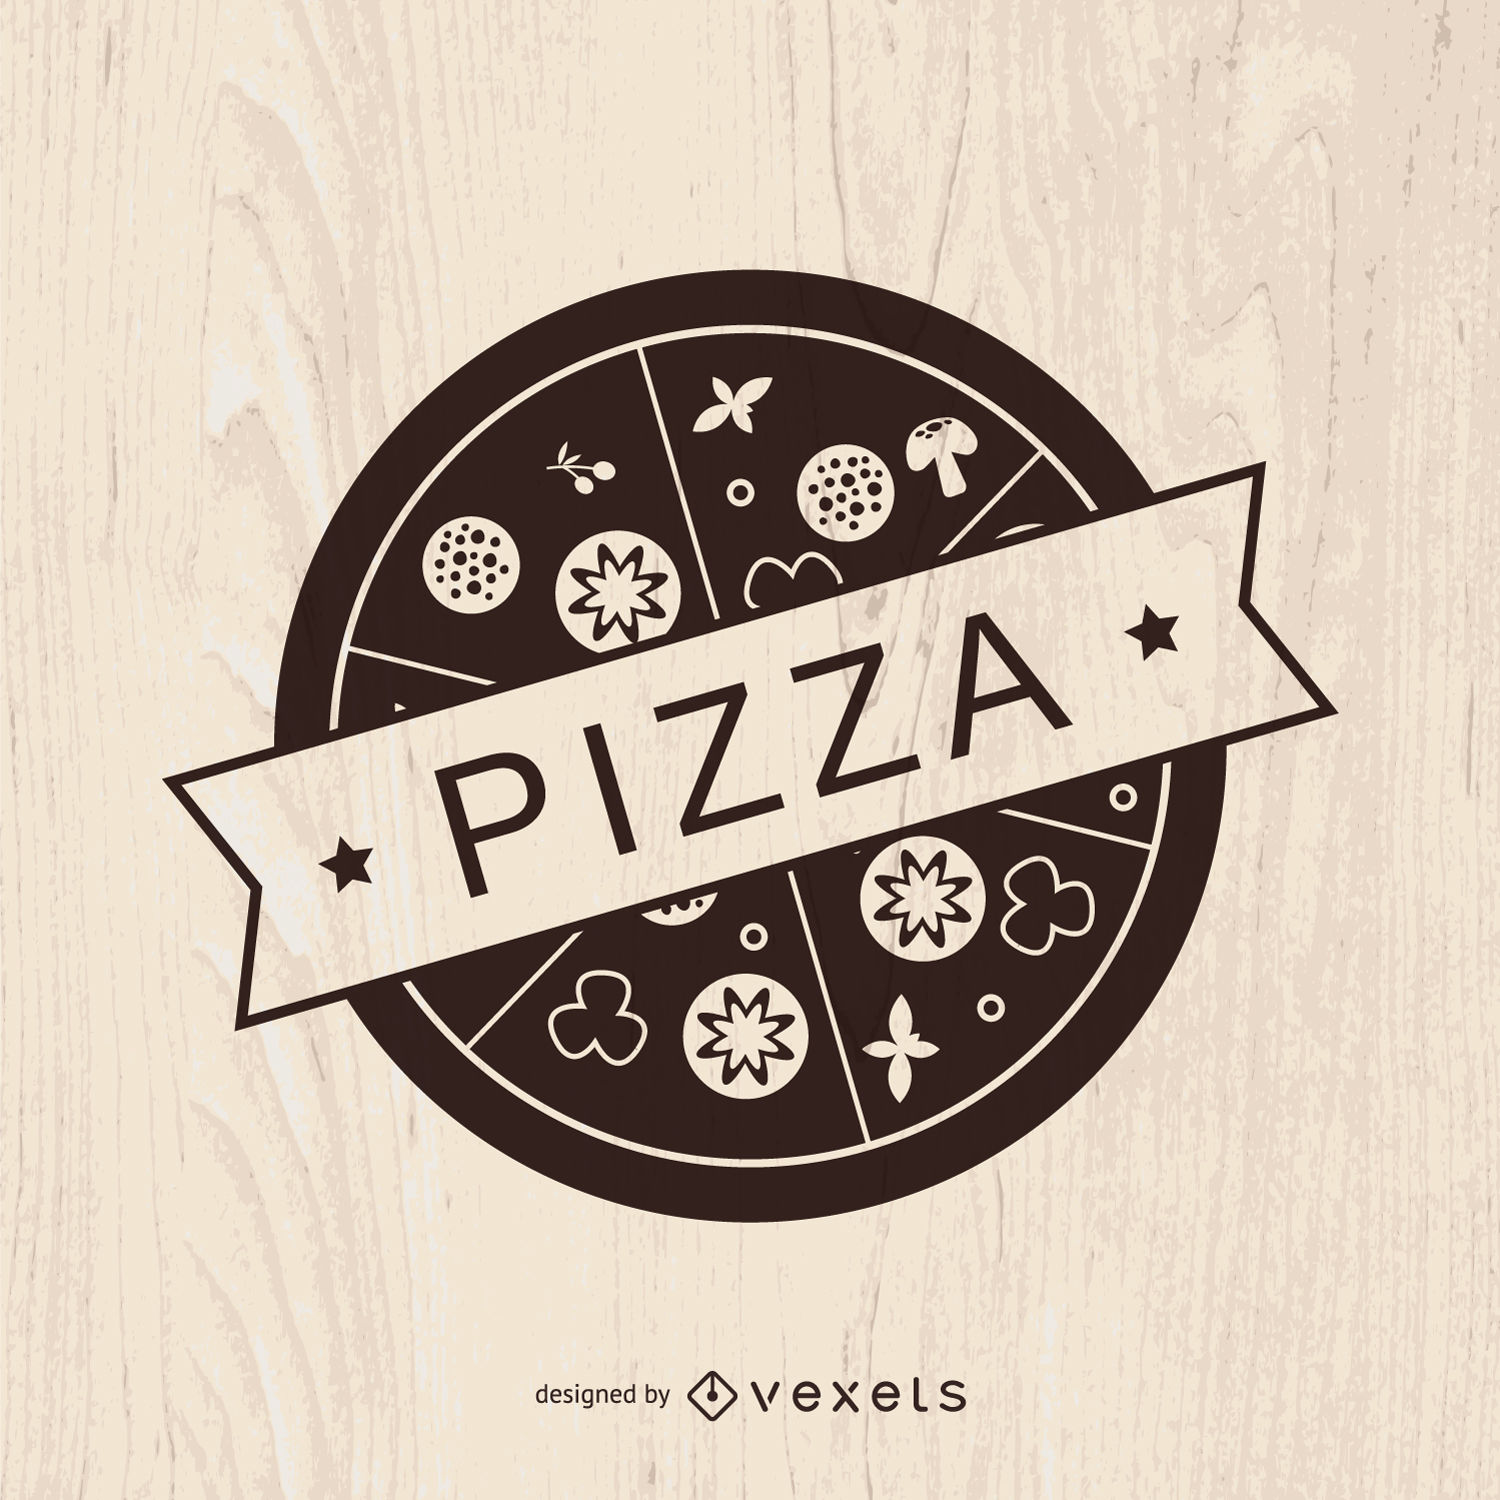 vintage pizza logo design vector download #32144